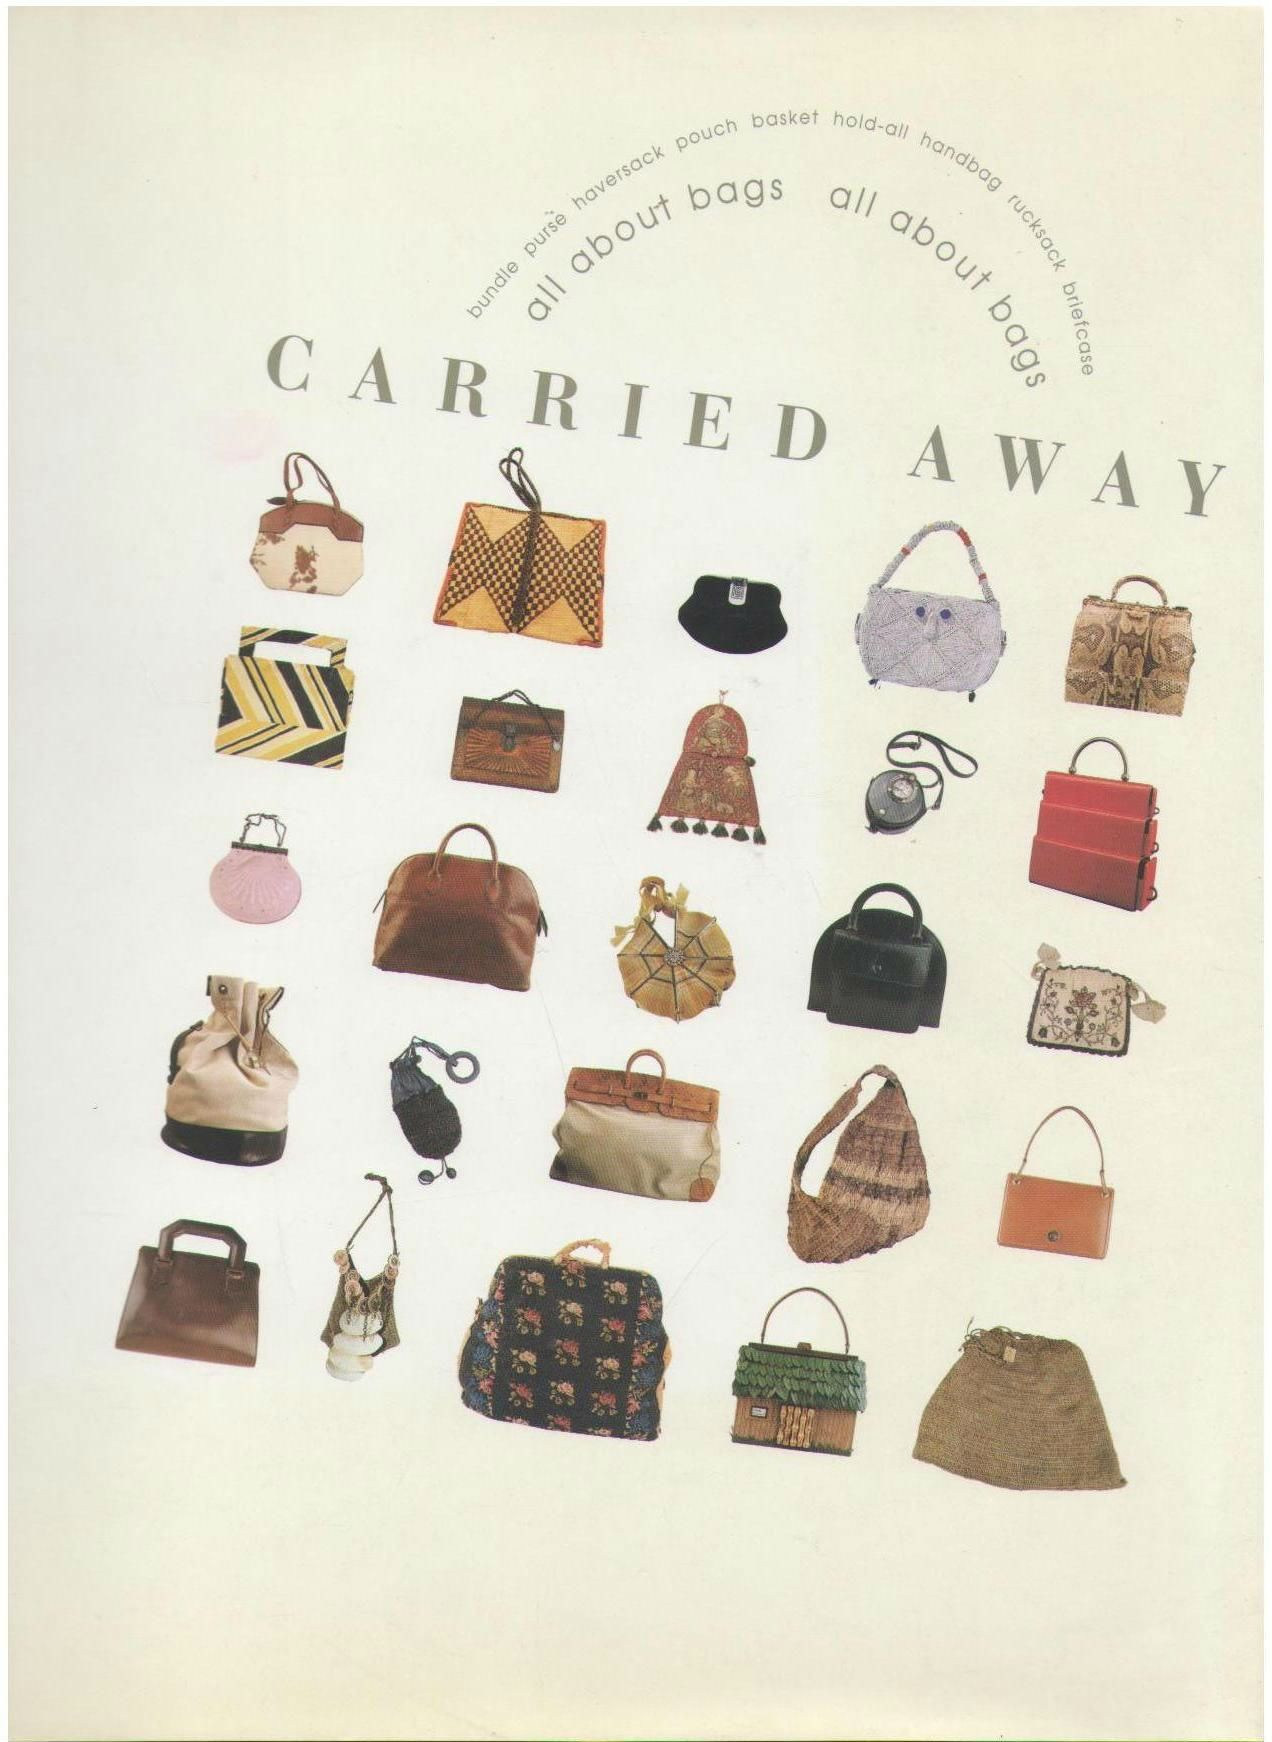 Carried Away: All About Bags, Chenoune, Farid